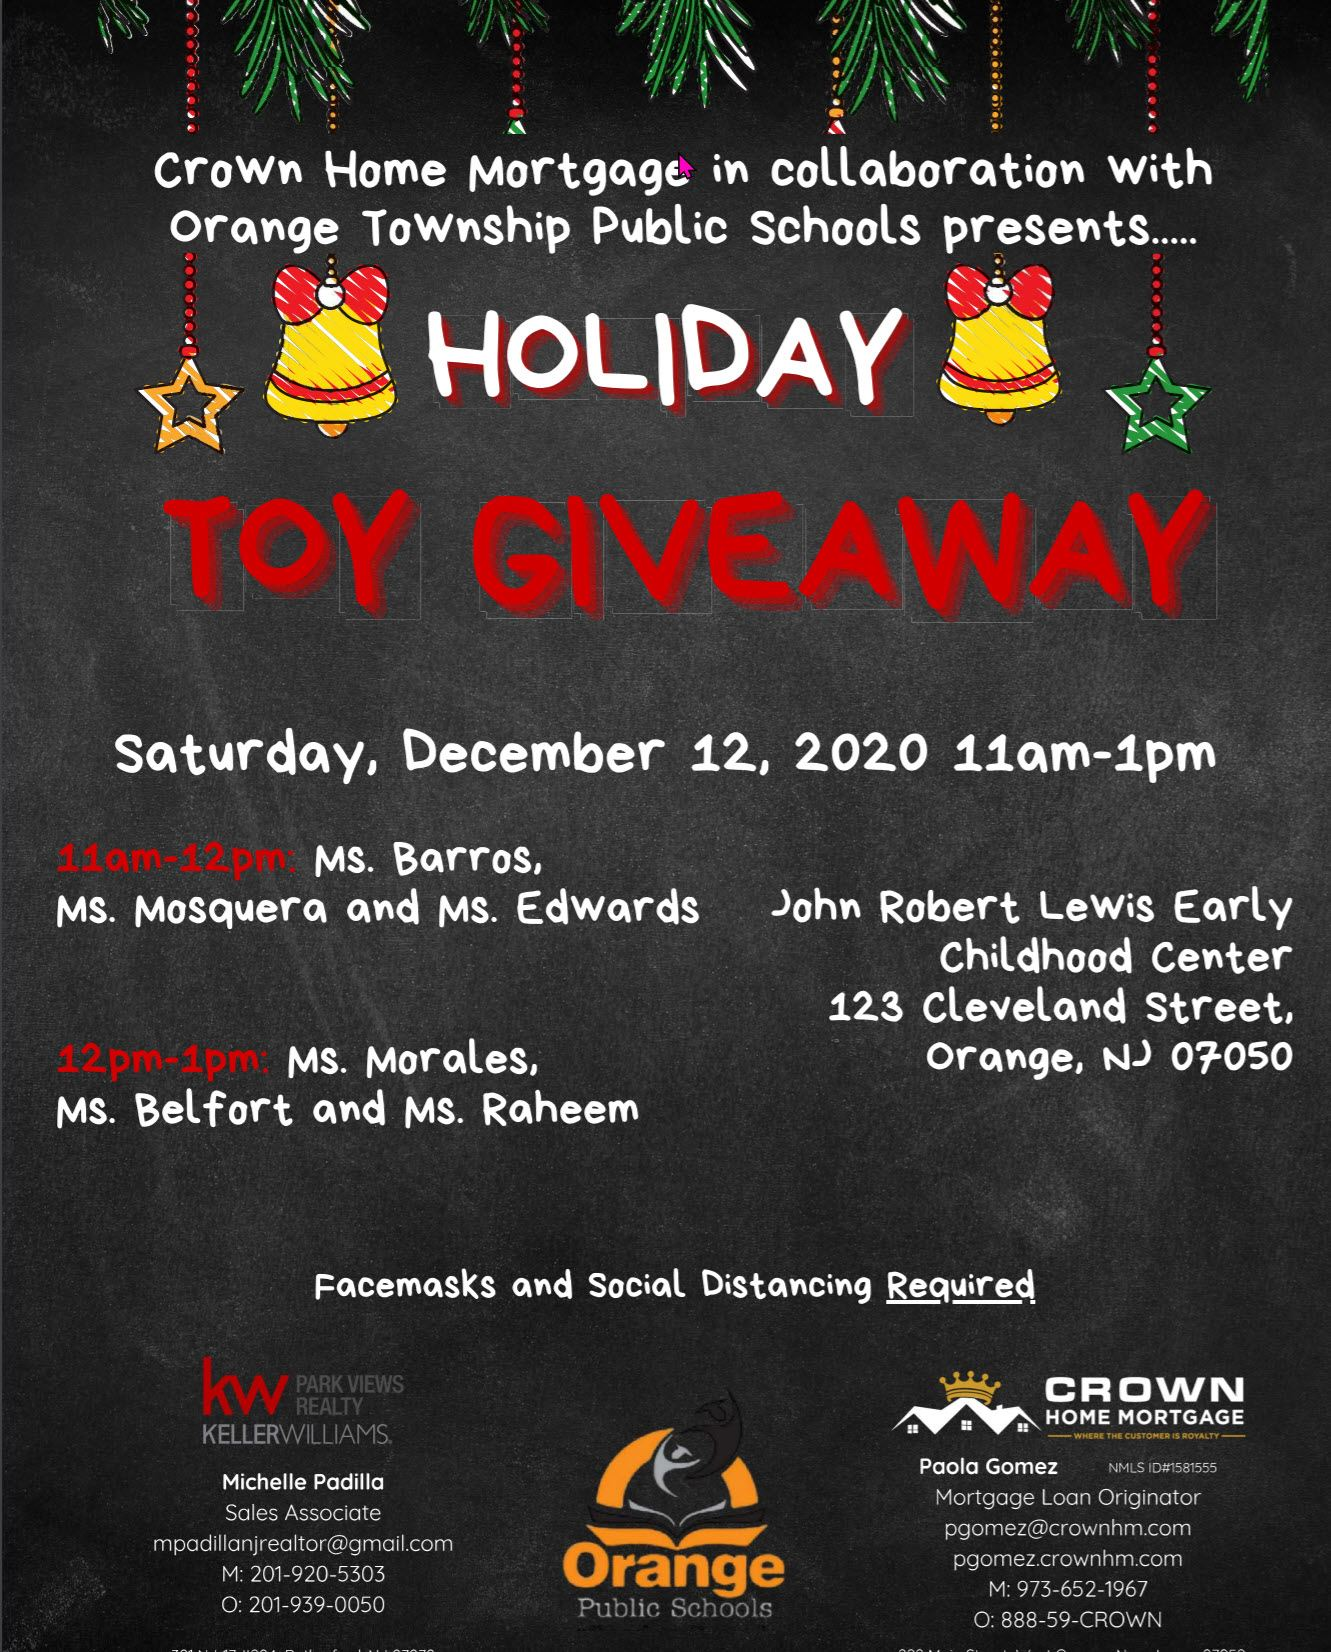 Holiday Toy Giveaway December 12, 2020 11:00 am -1 pm